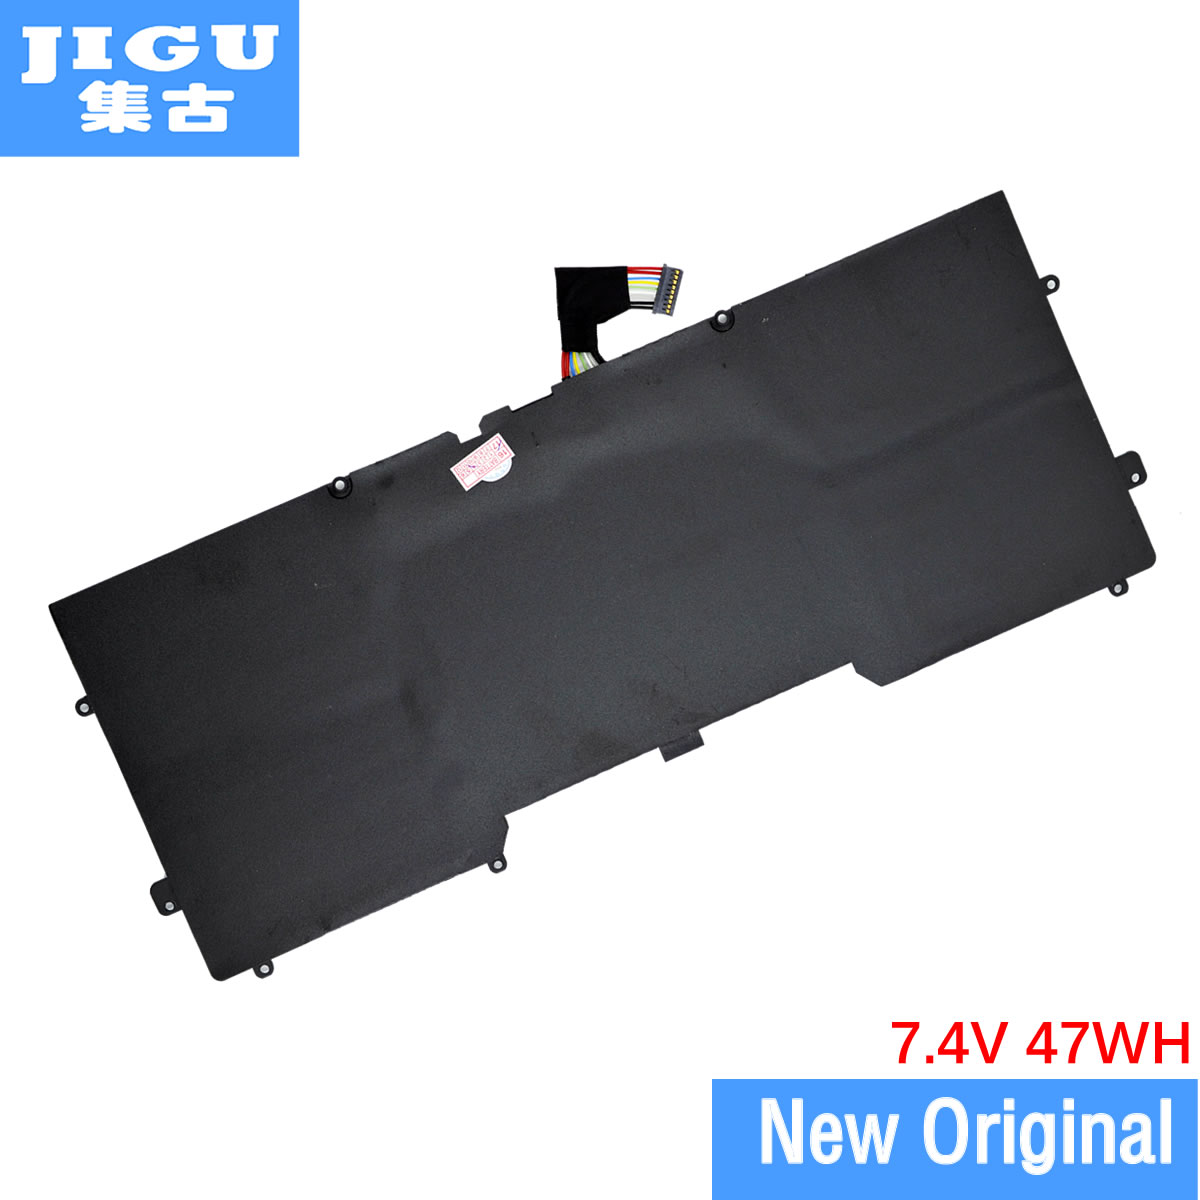 все цены на JIGU Y9N00 Original laptop Battery For DELL XPS 13 L321X 13-L321X L321X 13-L322X 12 9Q33 13 Ultrabook Series онлайн